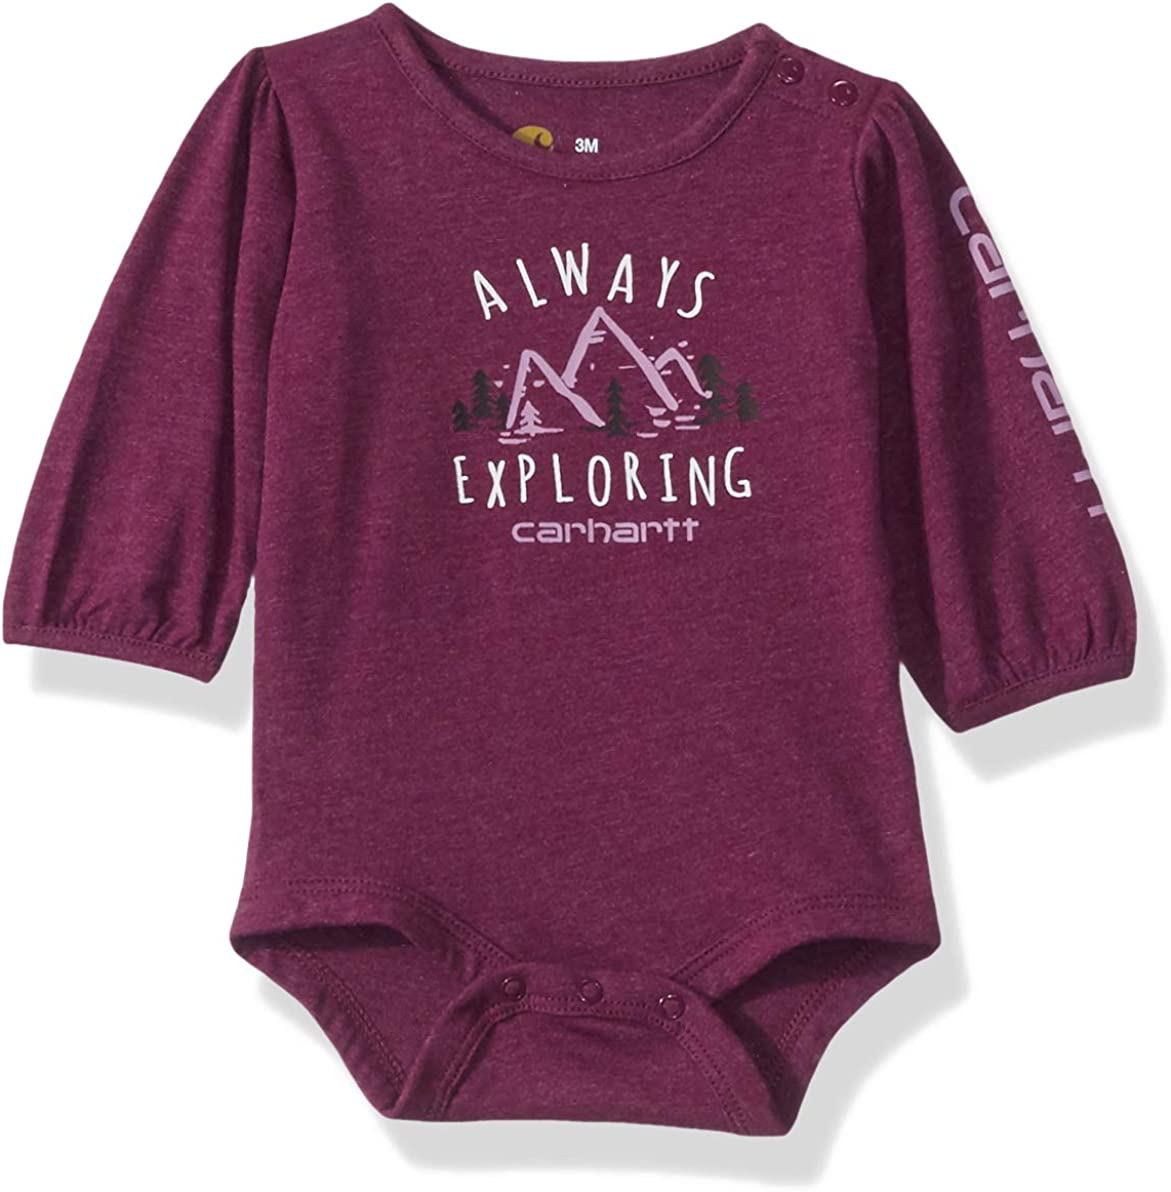 Carhartt Baby-Girls Long Sleeve Bodysuit Shirt